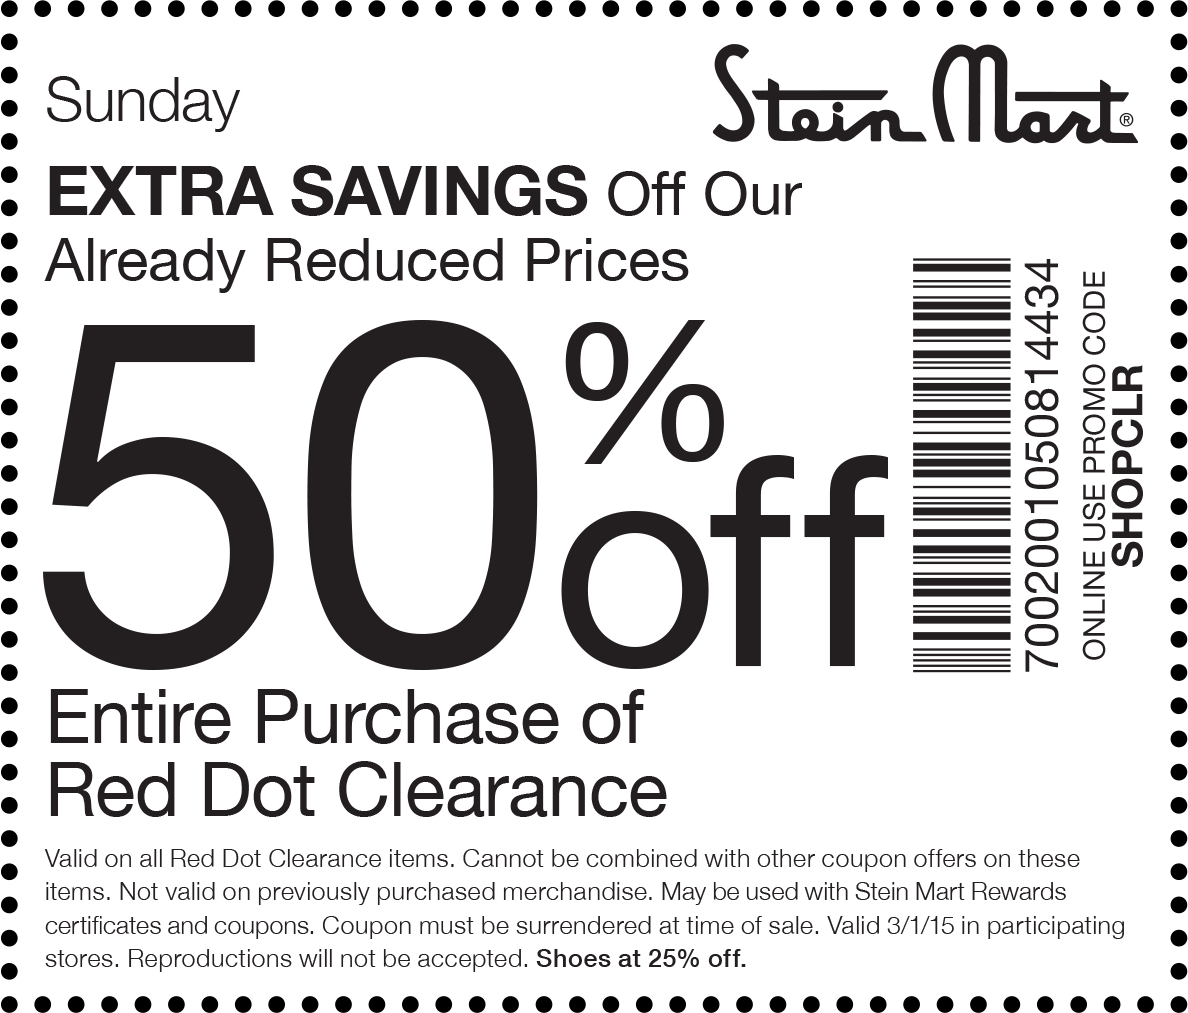 Stein Mart Coupon February 2017 Extra 50% off red dot clearance today at Stein Mart, or online via promo code SHOPCLR